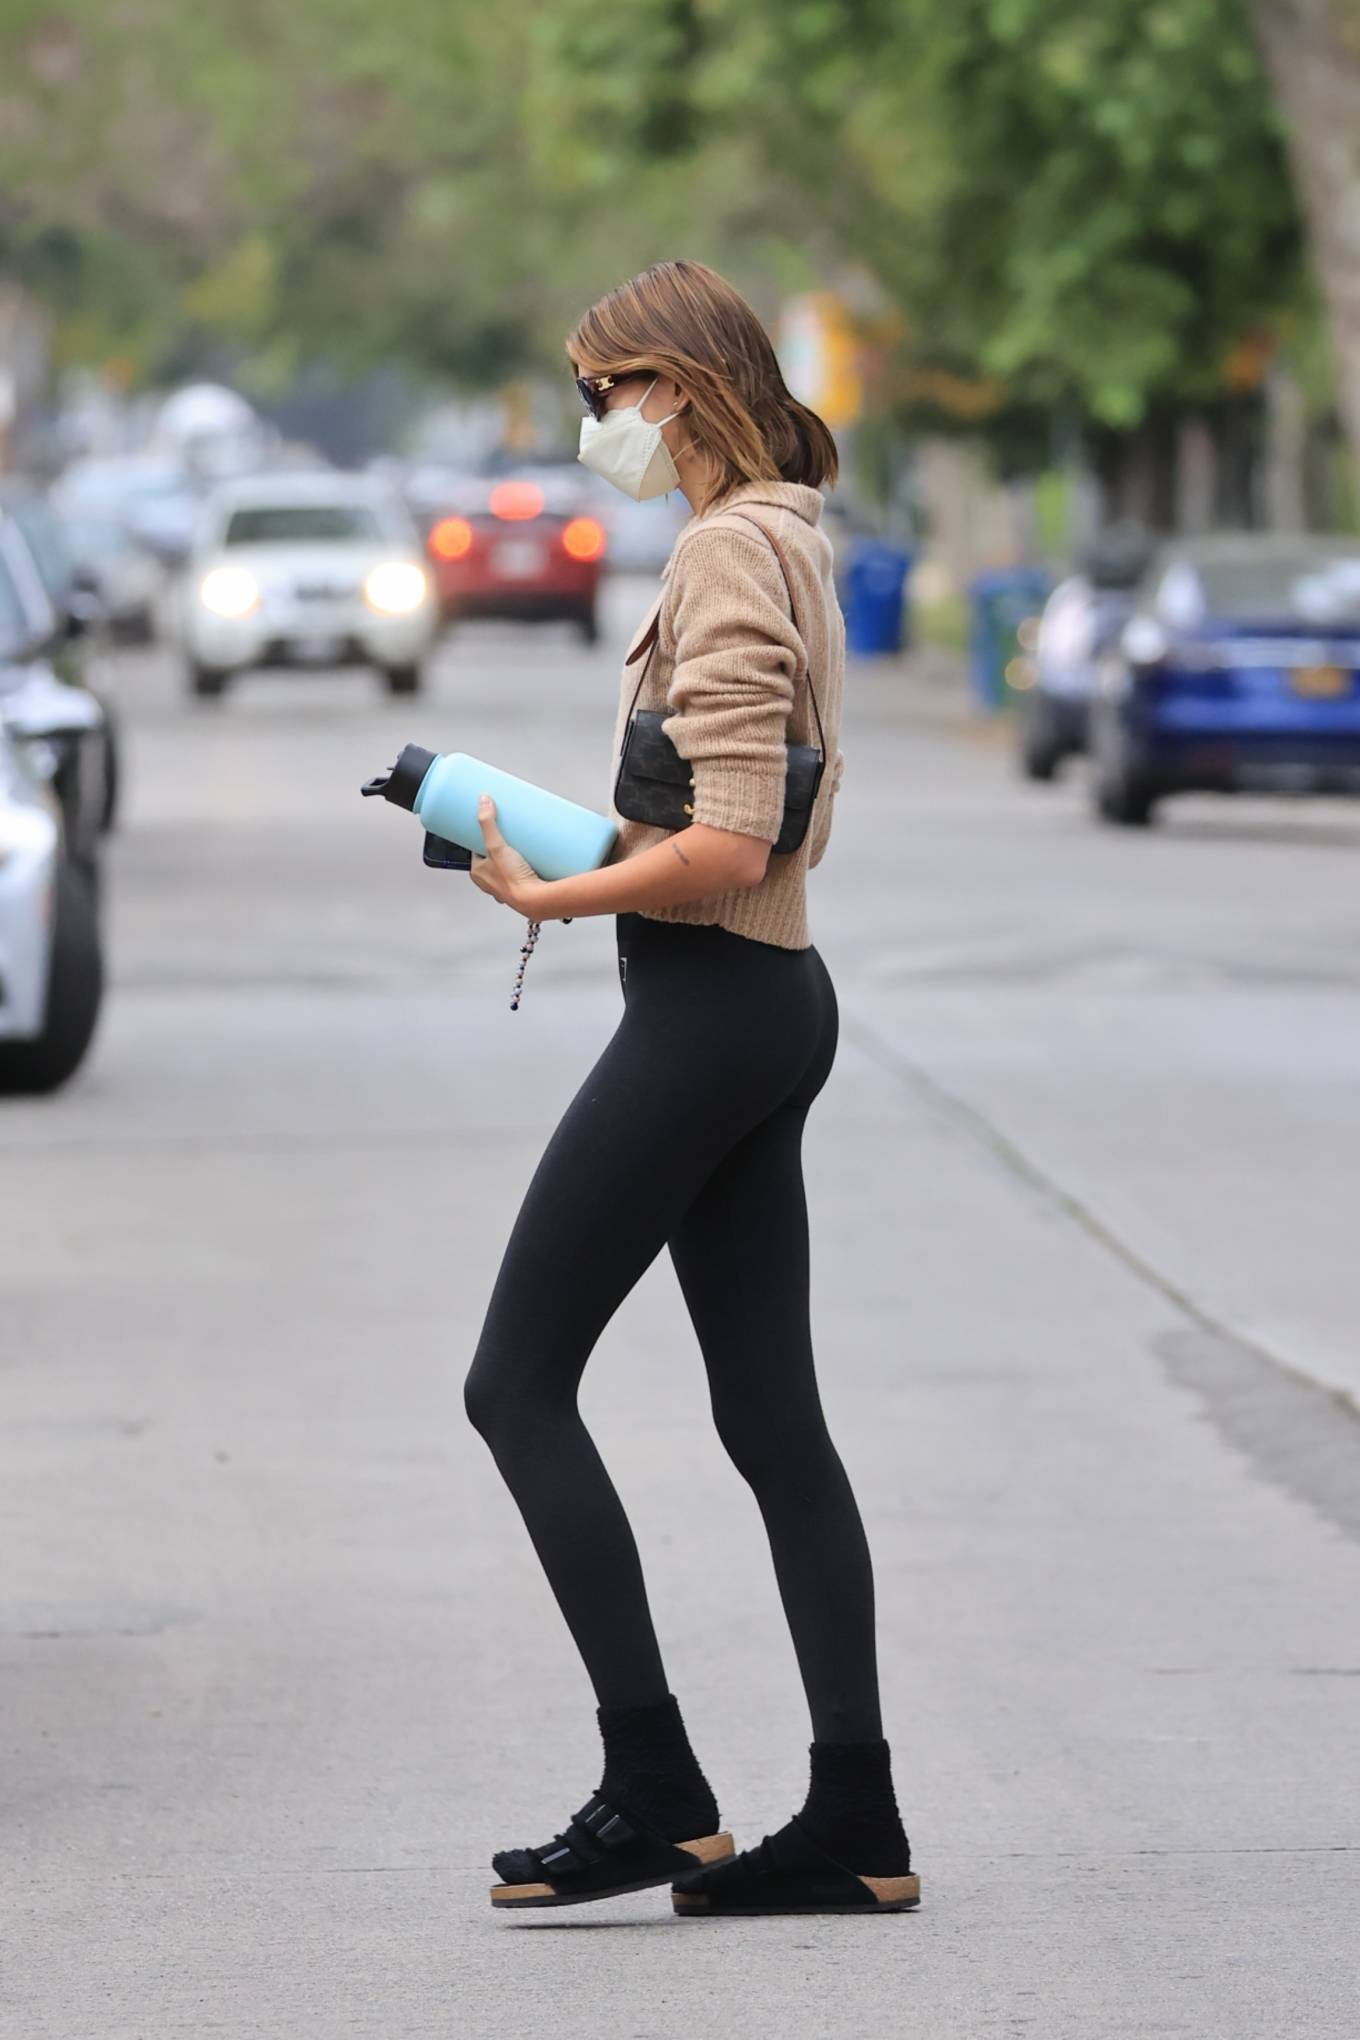 Kaia Gerber rocking figure hugging black nylon high rise workout leggings with brand logo and a polyester material